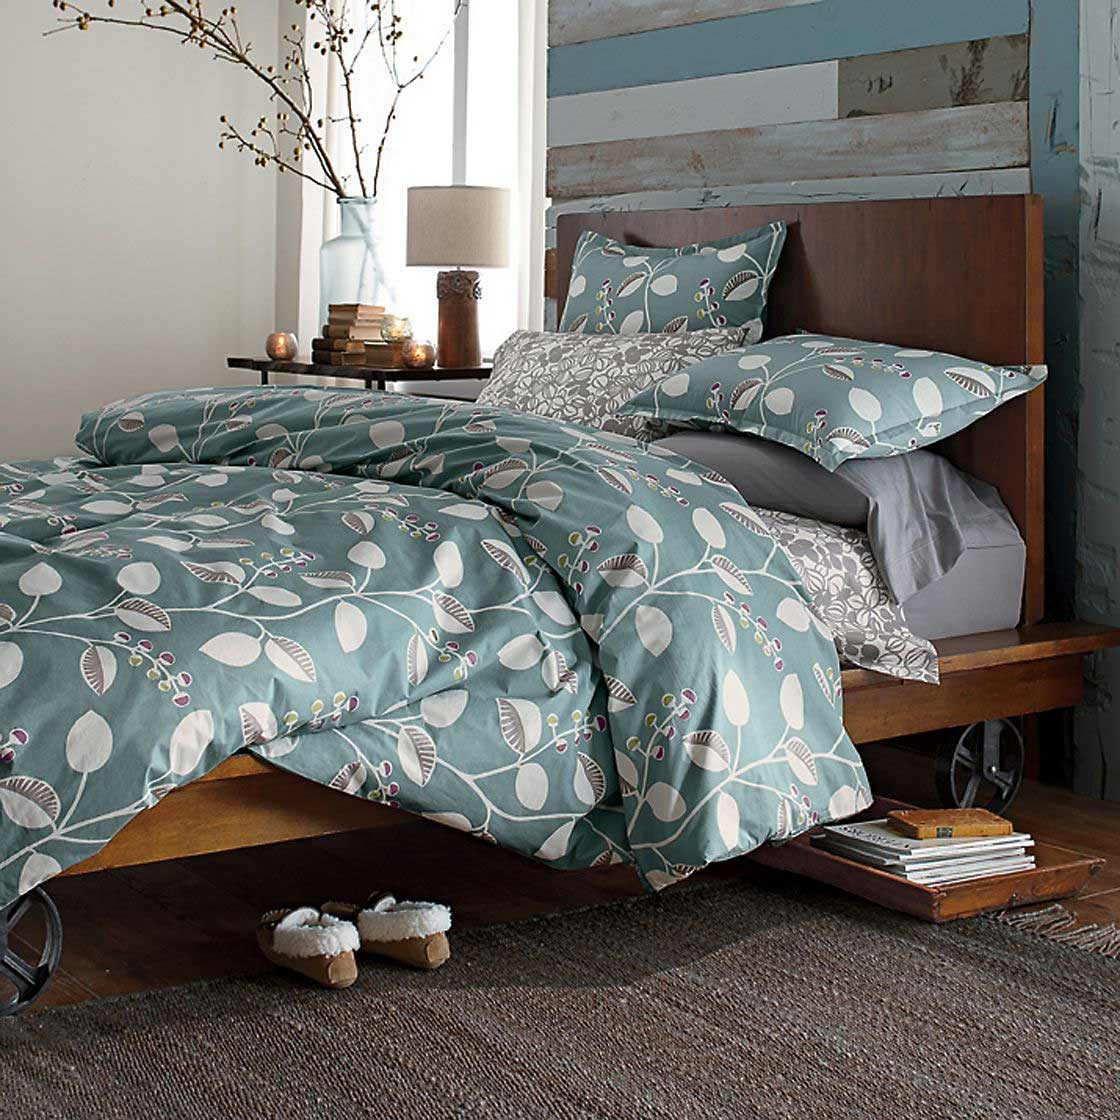 8 Organic Bedding Options to Give You Sweet Green Dreams